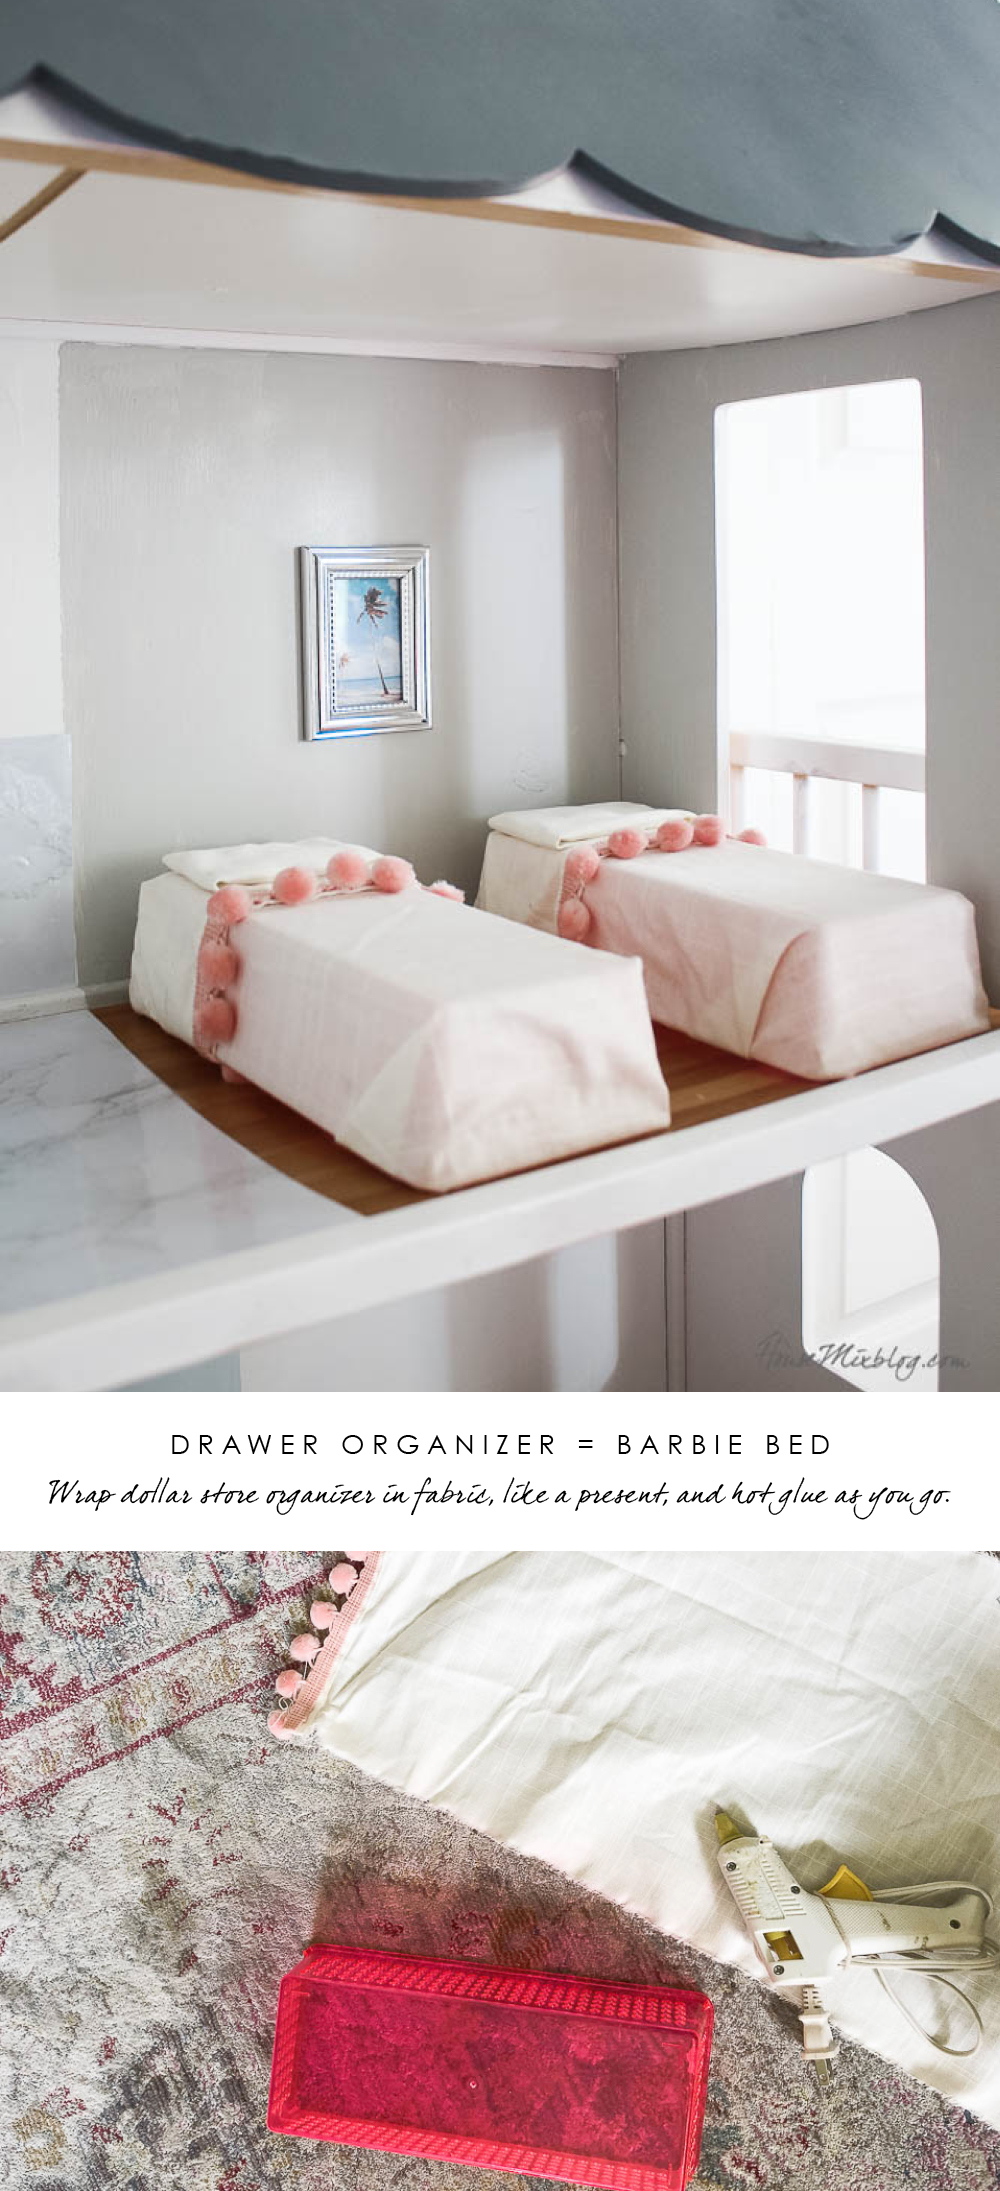 Barbie DIY furniture hacks - Doll bed from drawer organizer